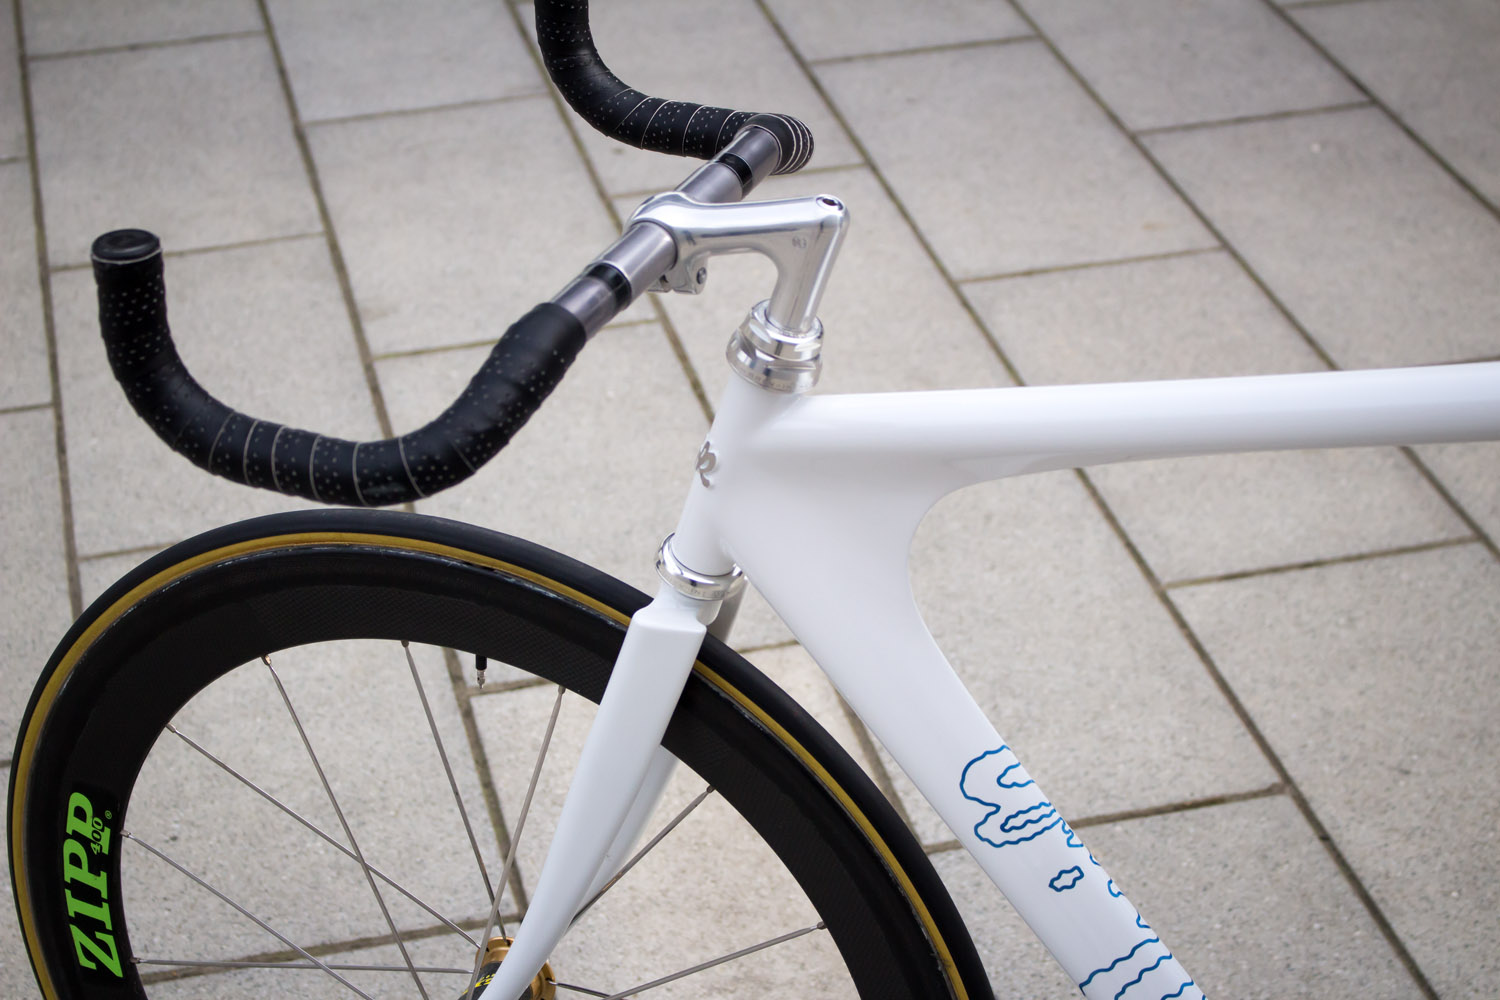 quirk_cycles_jack_track_pursuit_07.jpg